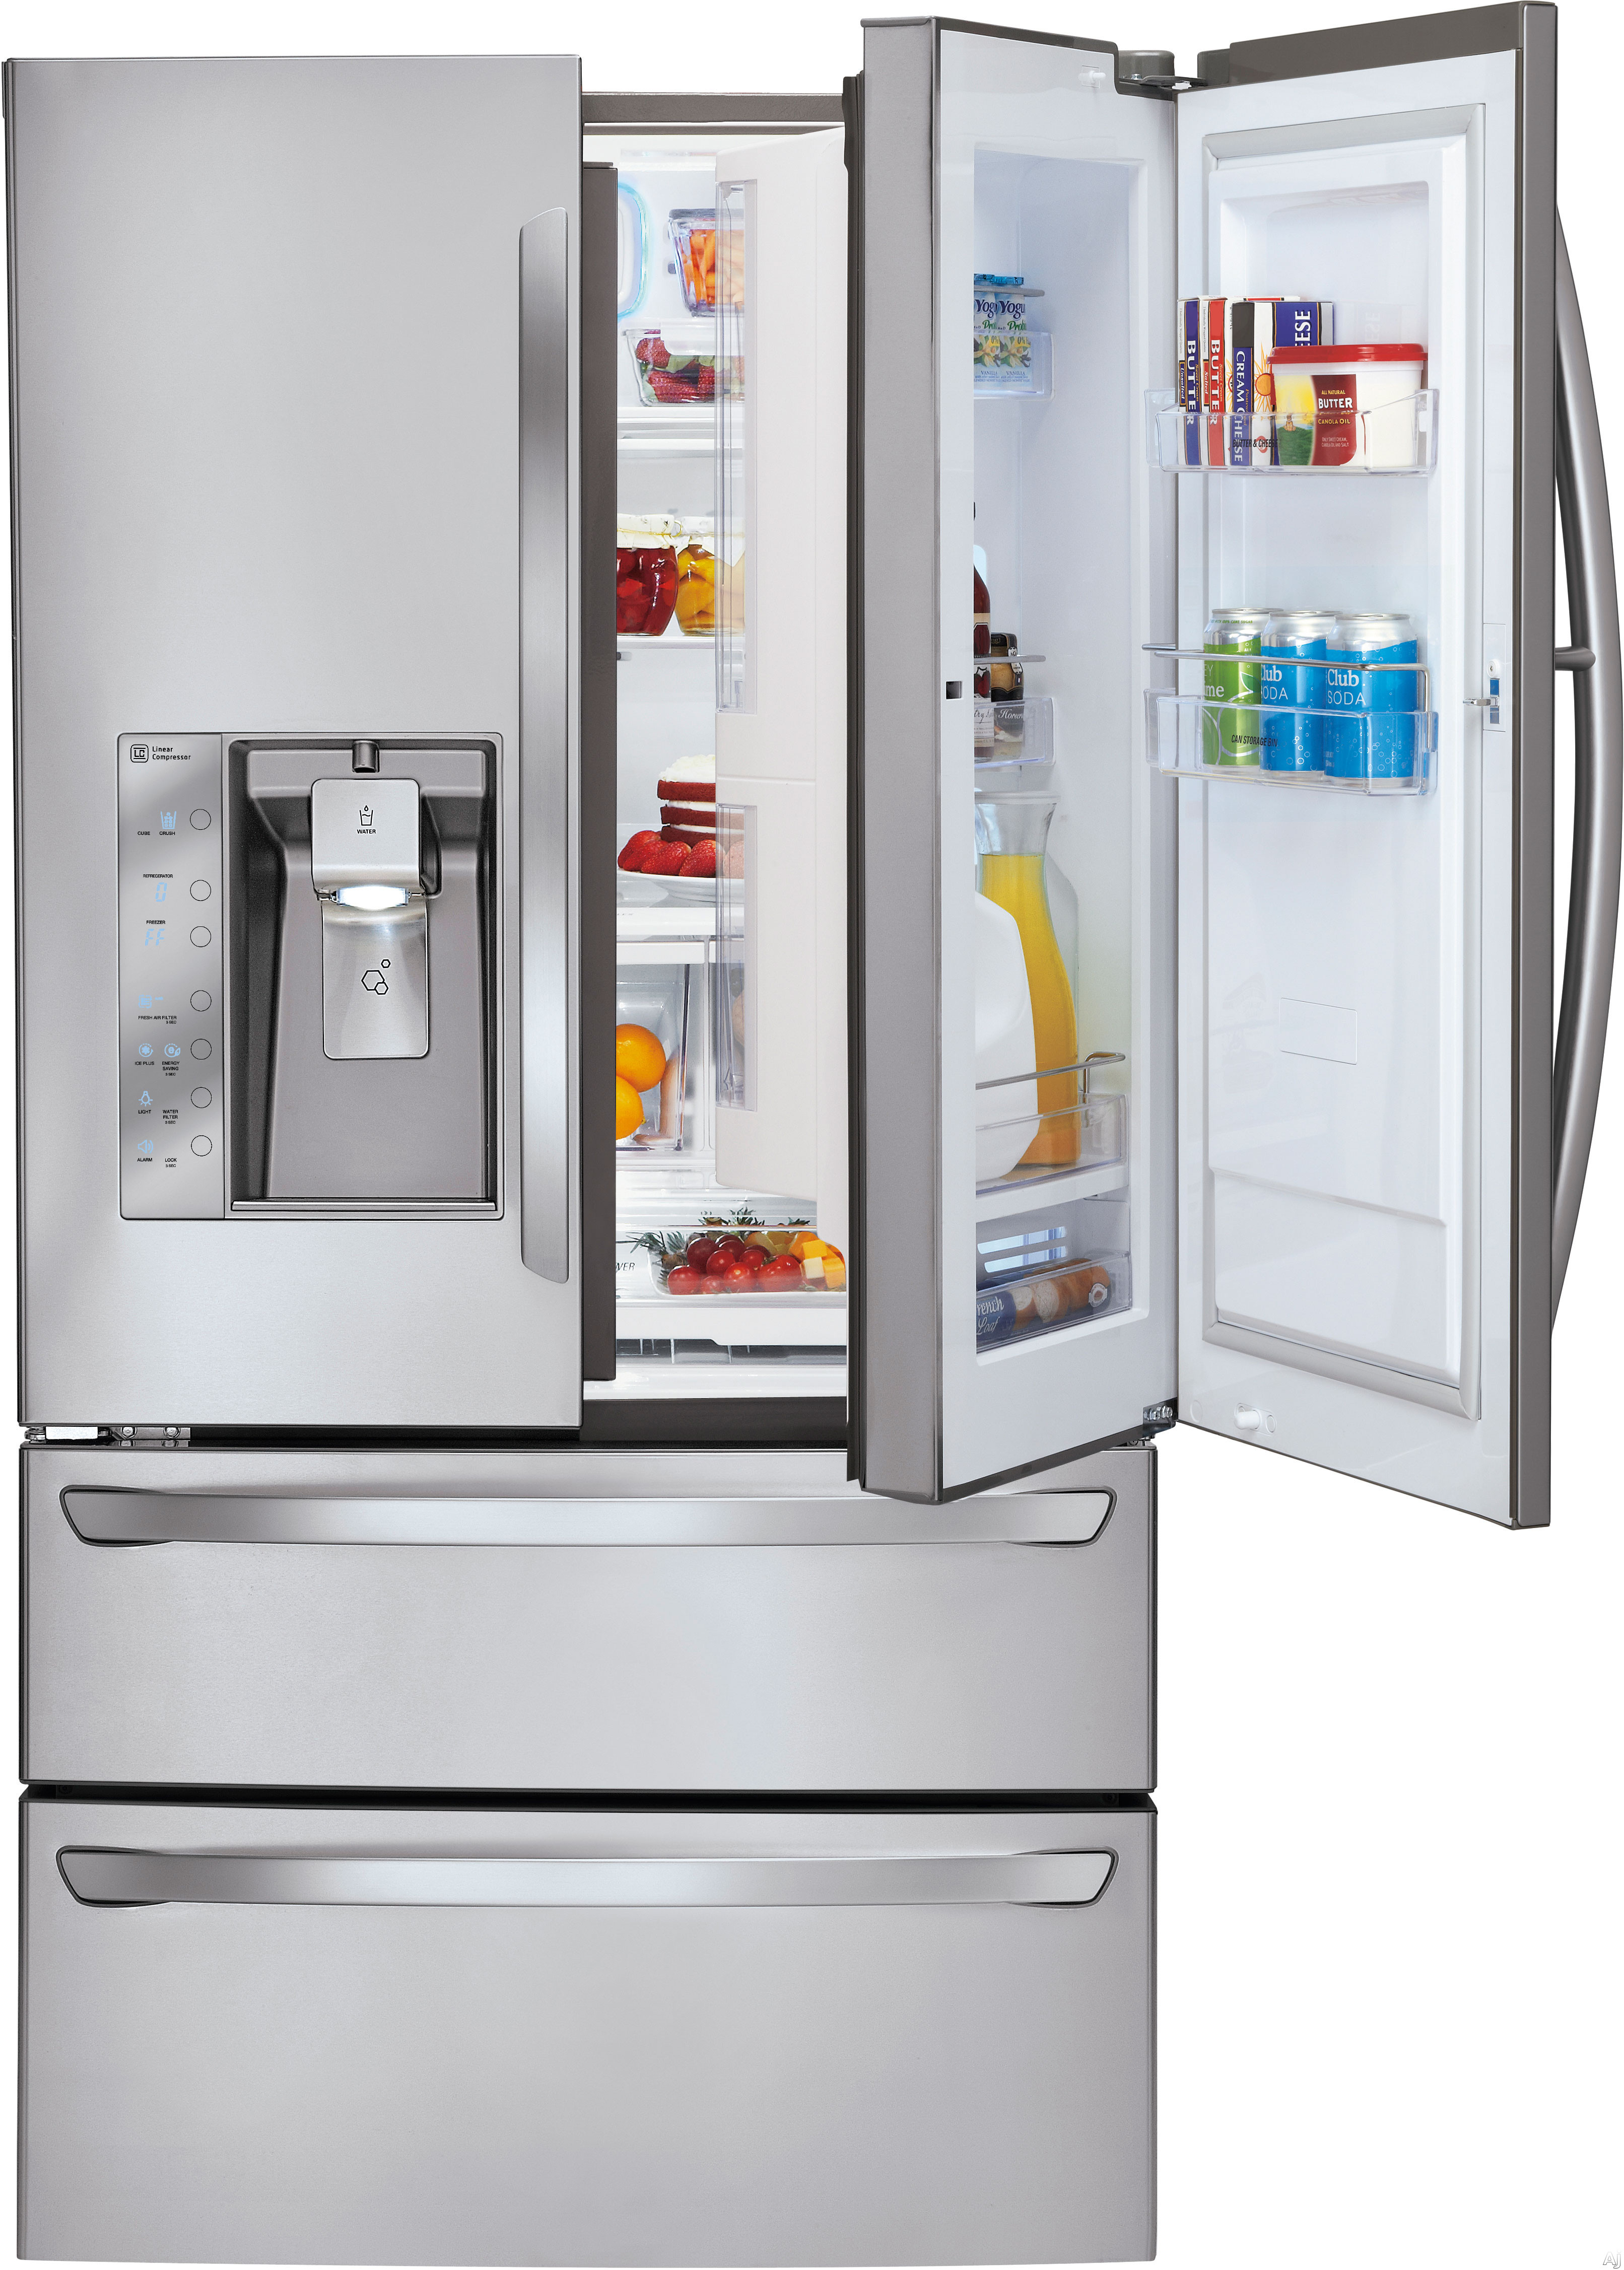 Le Meilleur Lg Lmx30995St 30 3 Cu Ft French Door Refrigerator With Ce Mois Ci